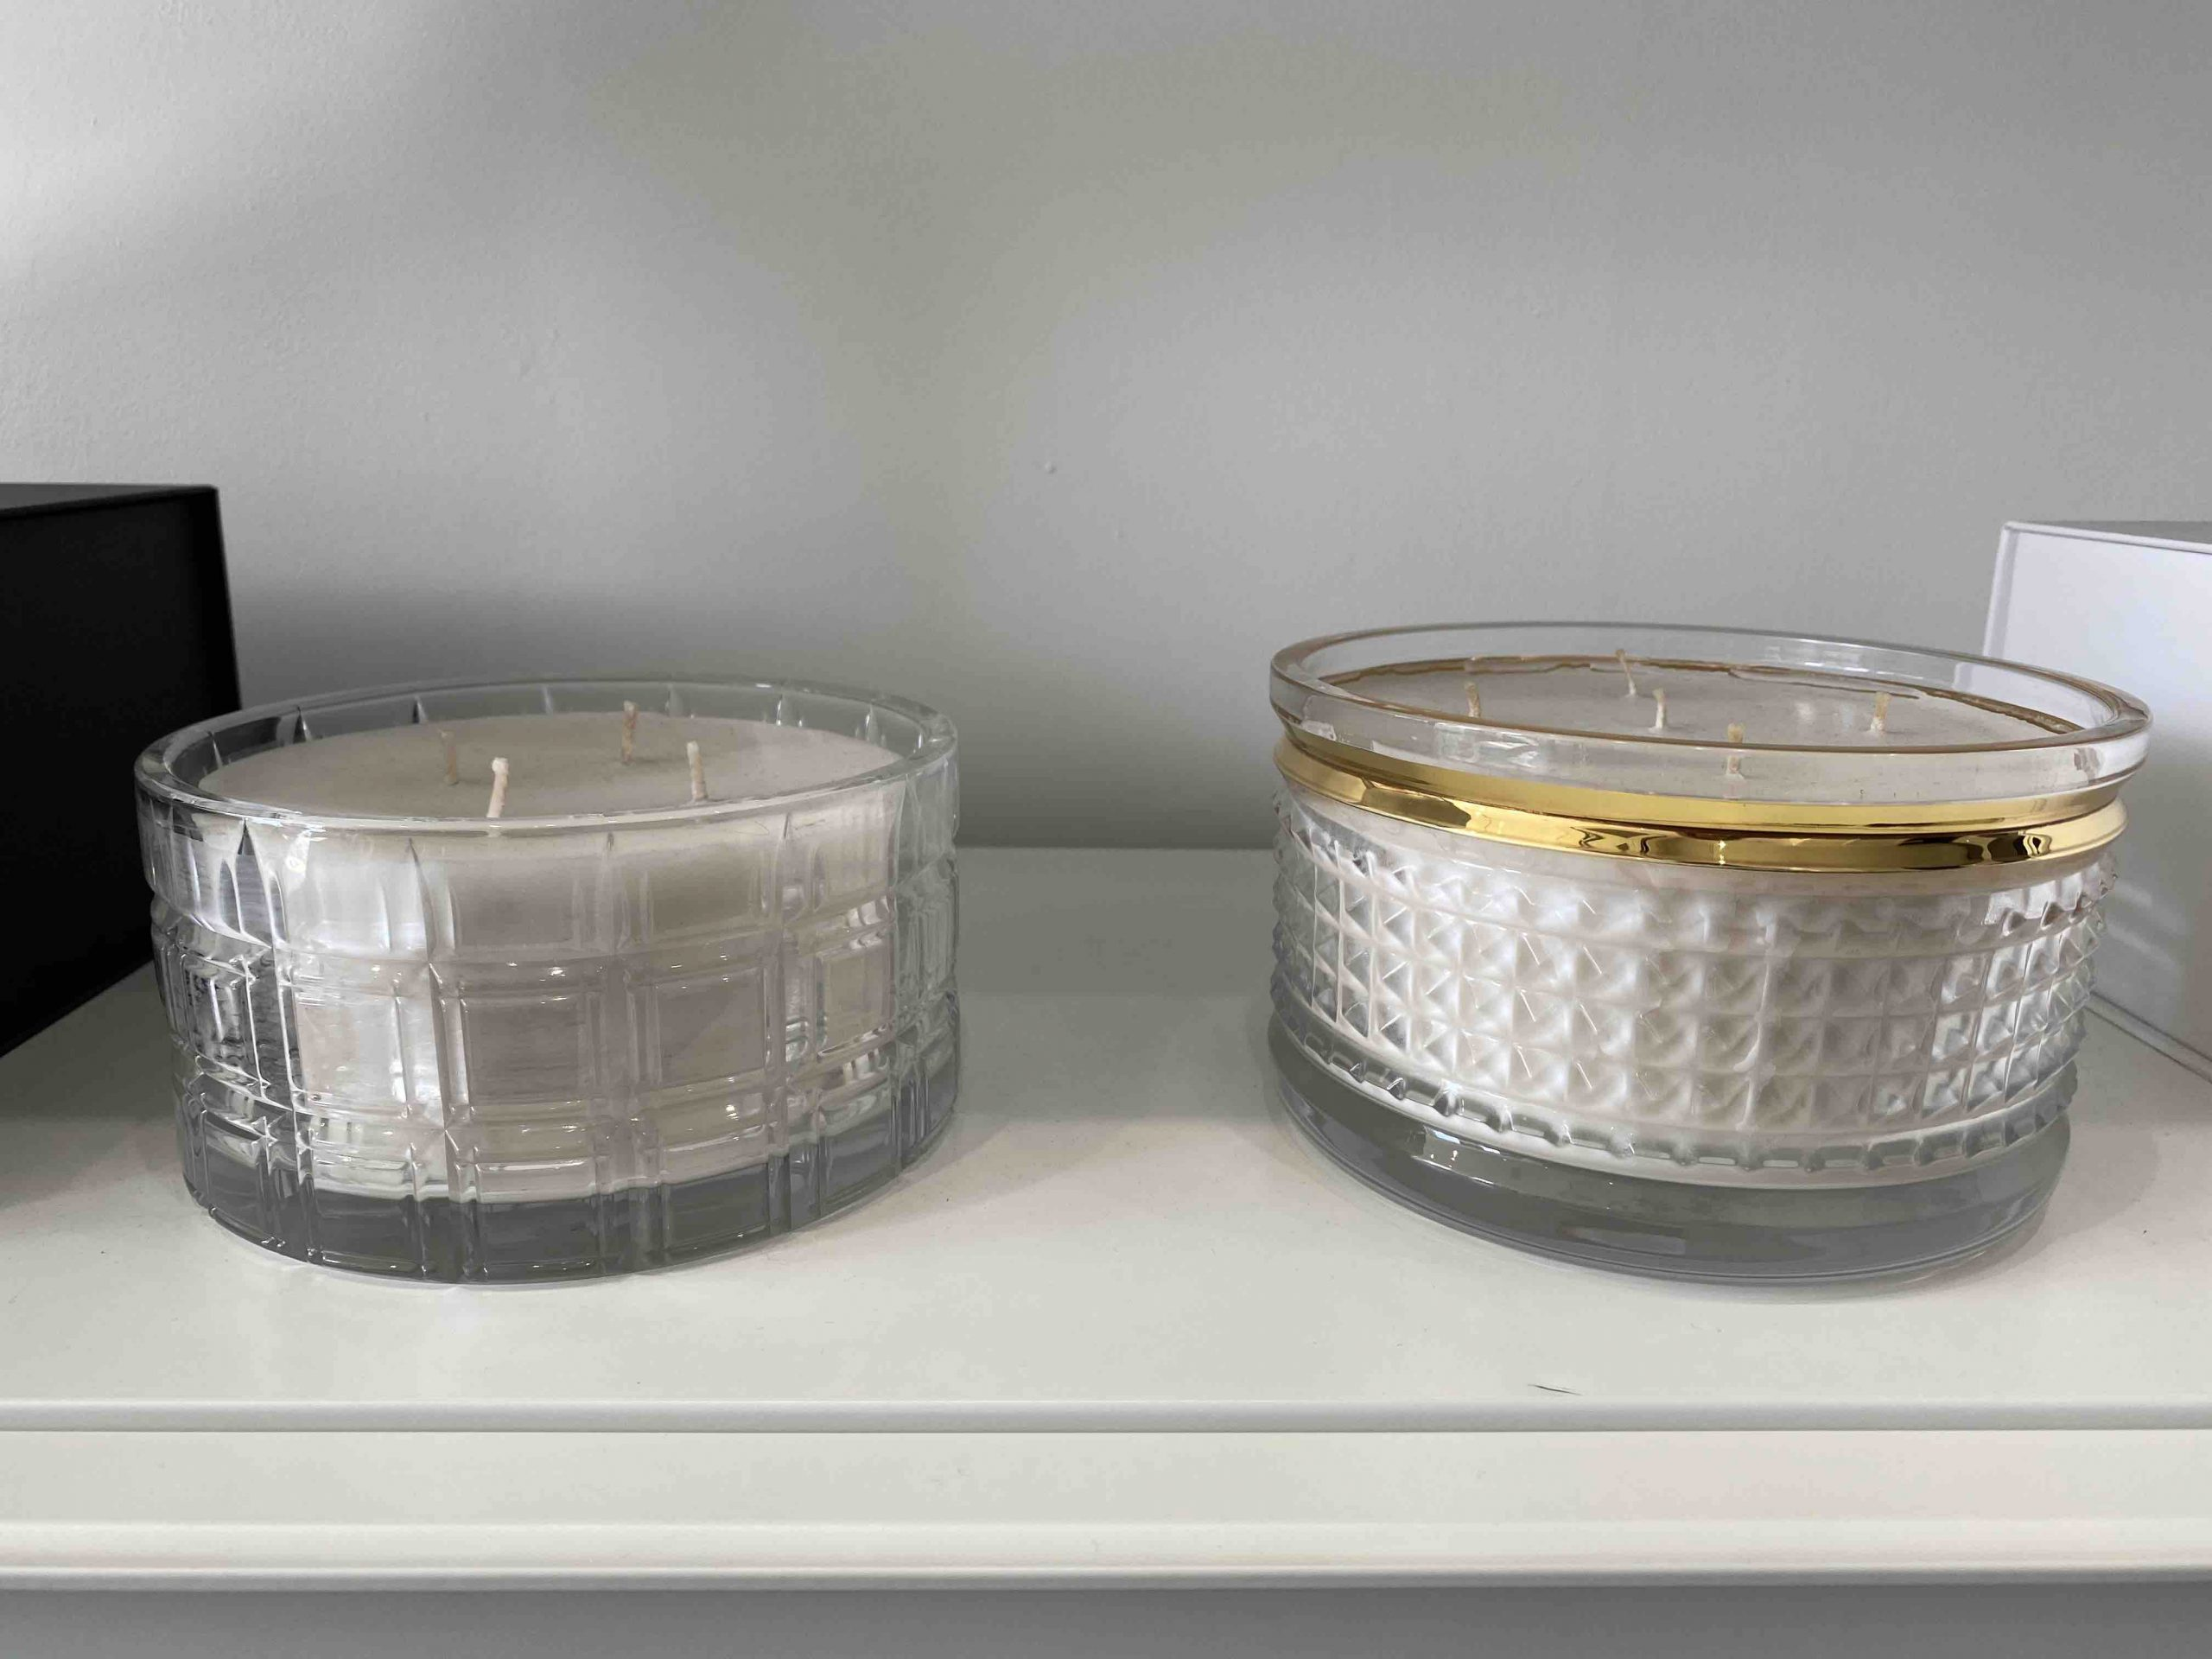 Humos Waterford Crystal candles